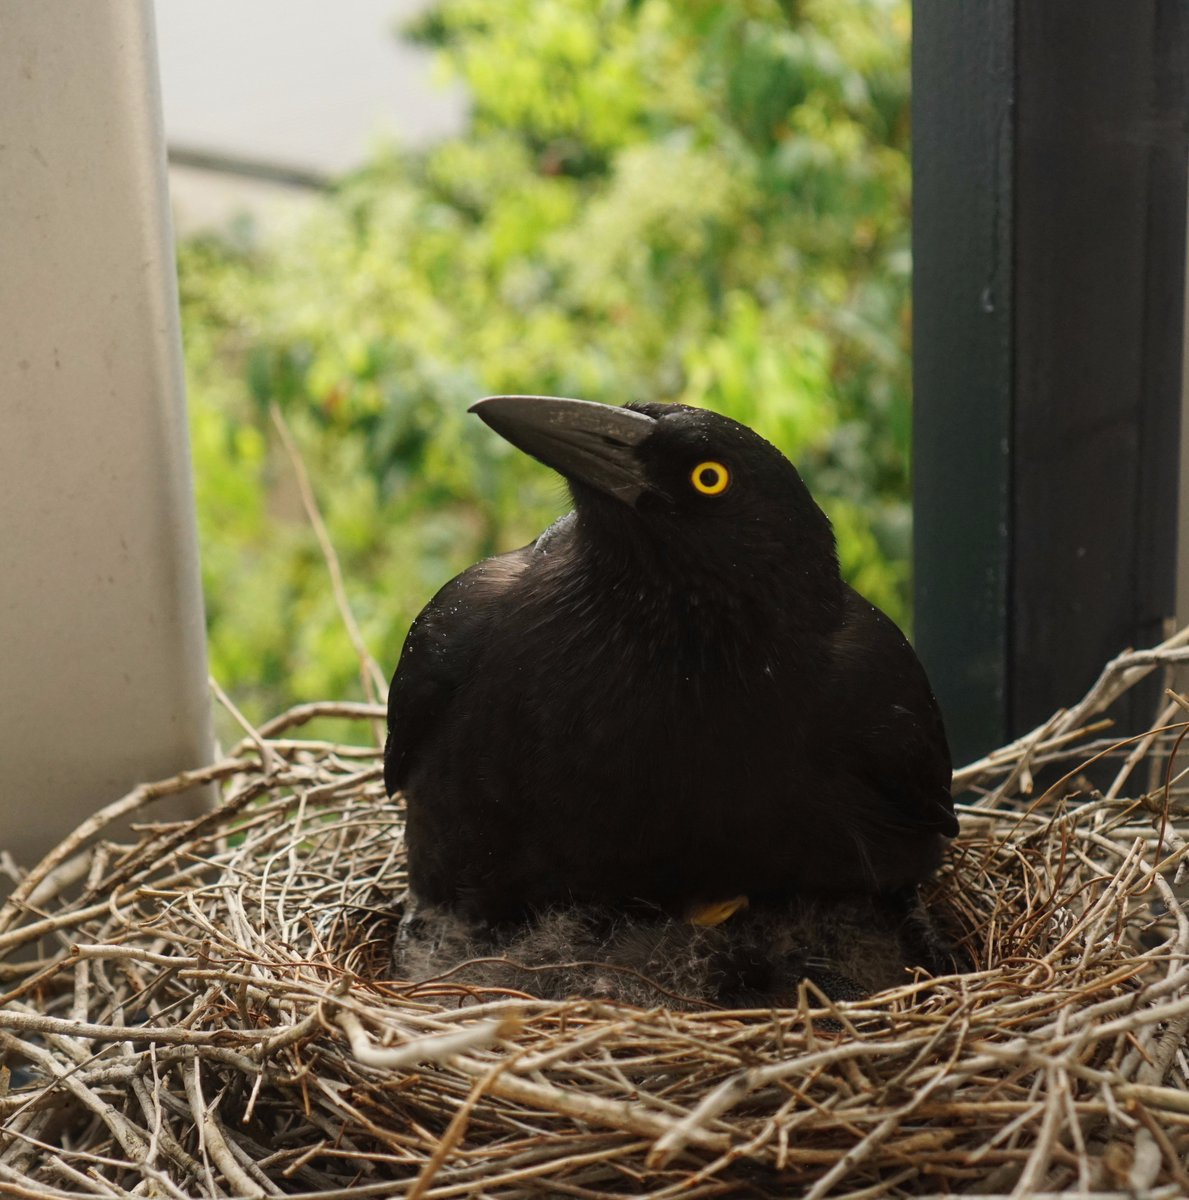 I think Charlotte Currawong may be having some difficulty staying on top of the chicks. #labcurrawong #uq #uqwildlife<br>http://pic.twitter.com/QnSMUEH82y